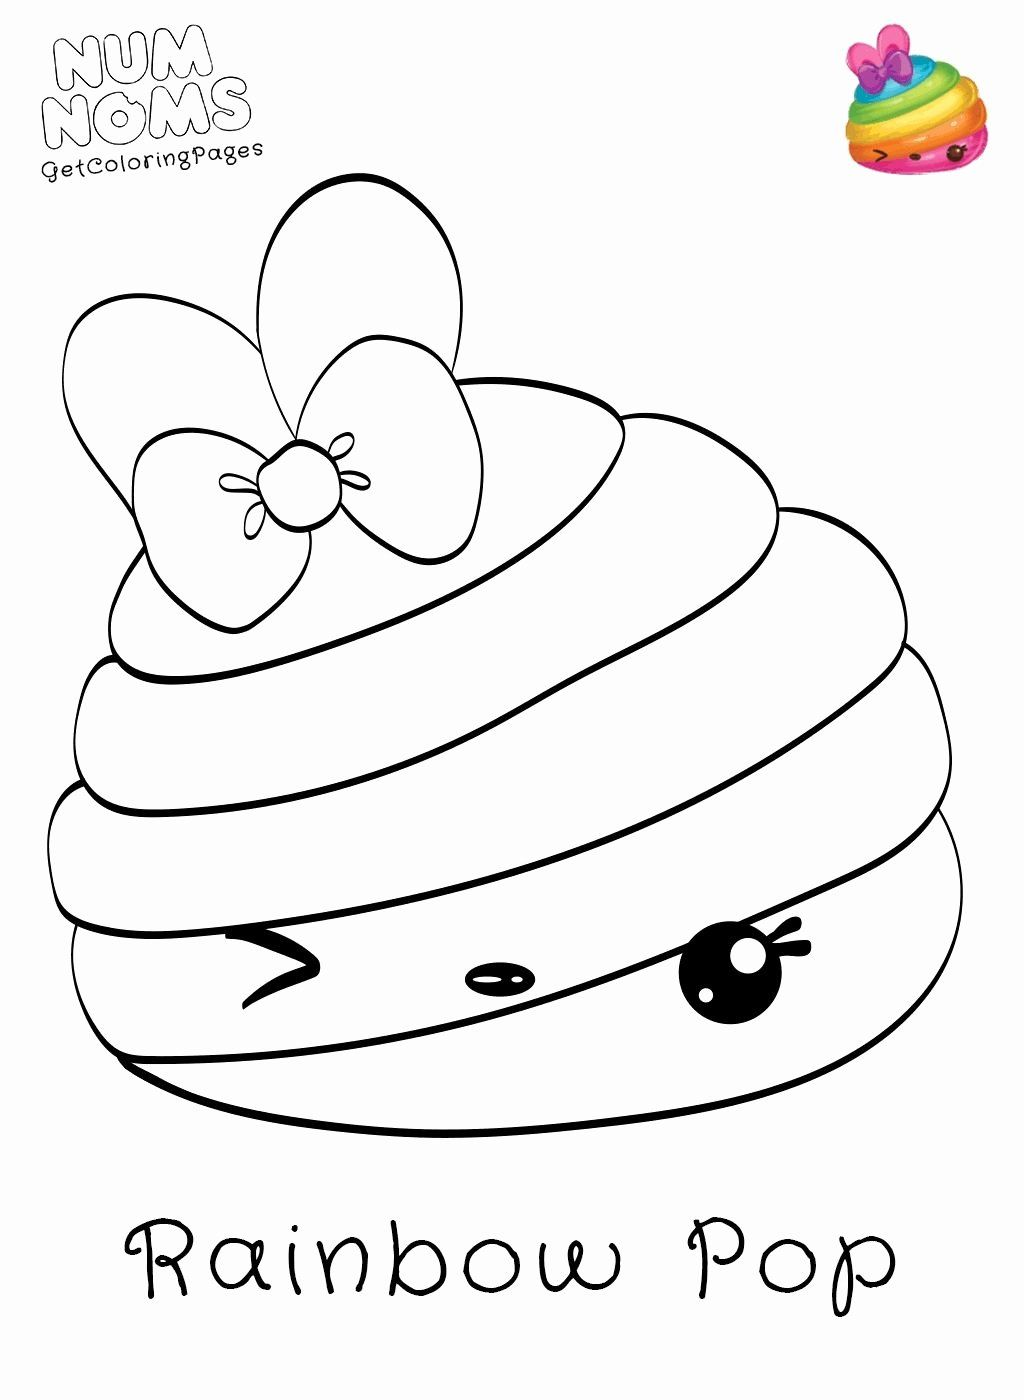 Num Noms Coloring Page Beautiful Idea By Snow On Nom Nums In 2020 Flag Coloring Pages Coloring Pages Inspirational Cute Coloring Pages